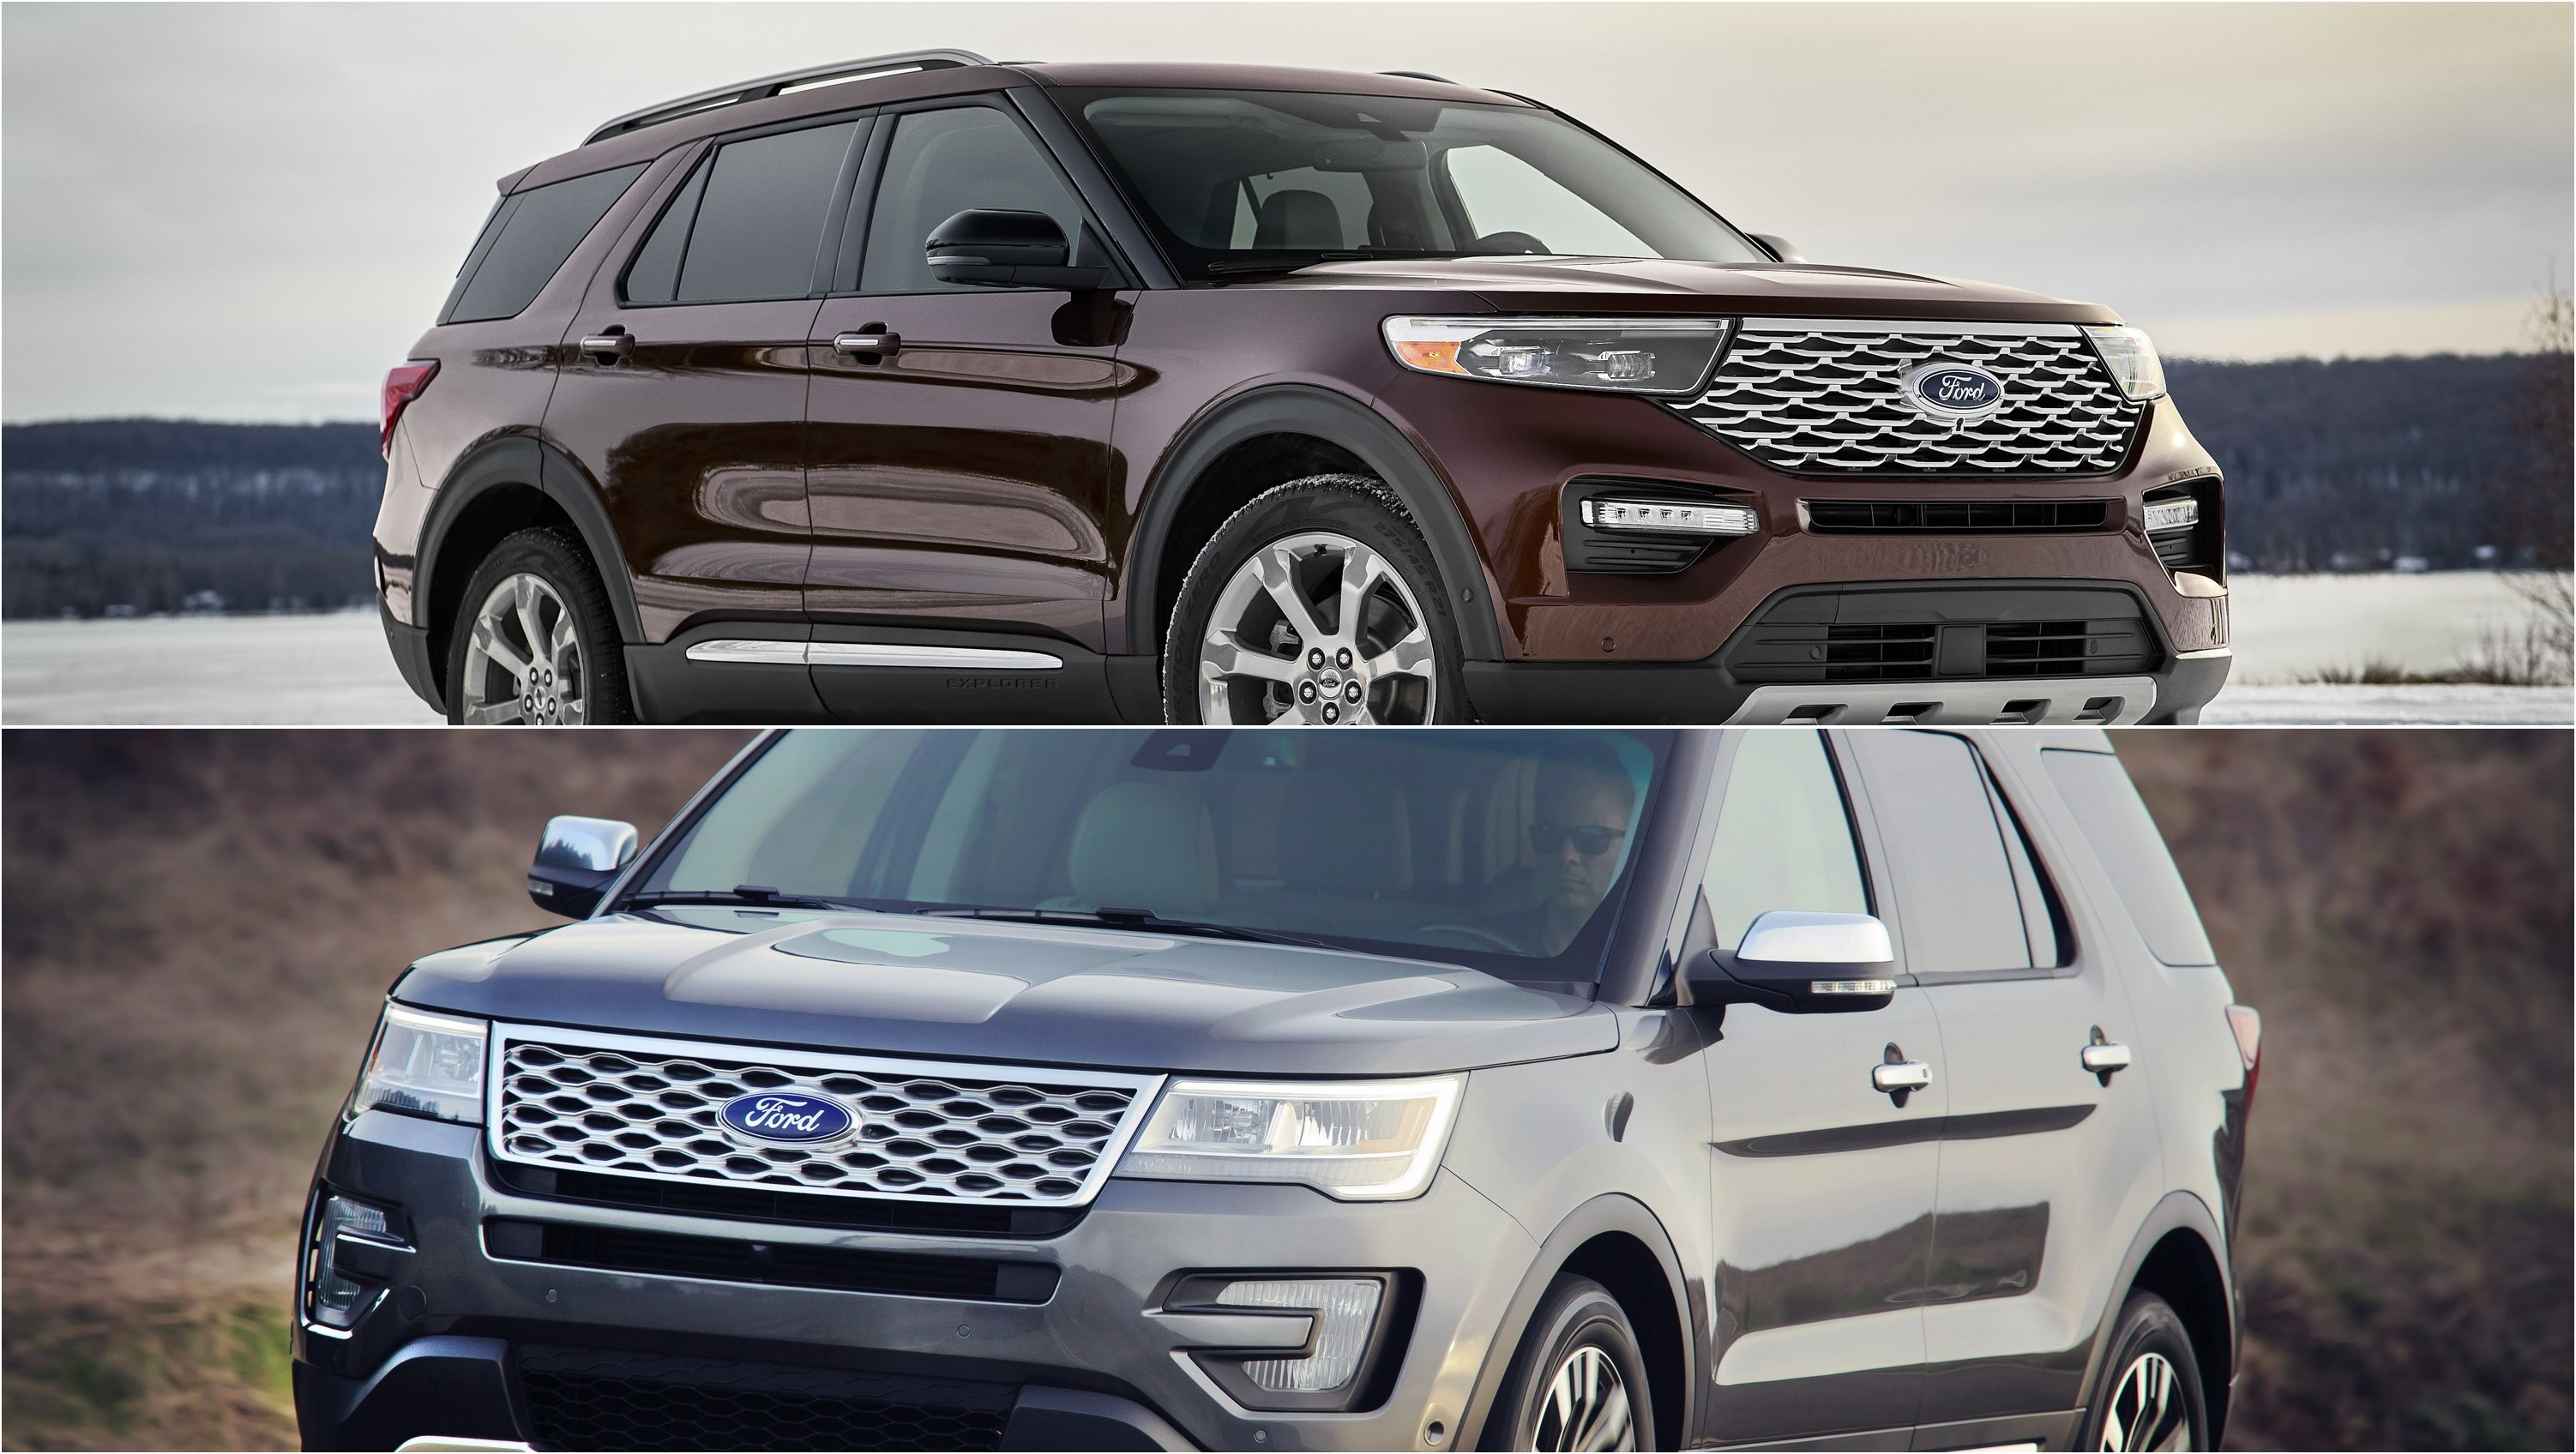 2019 Ford Explorer Vs 2020 Ford Explorer Pictures Photos